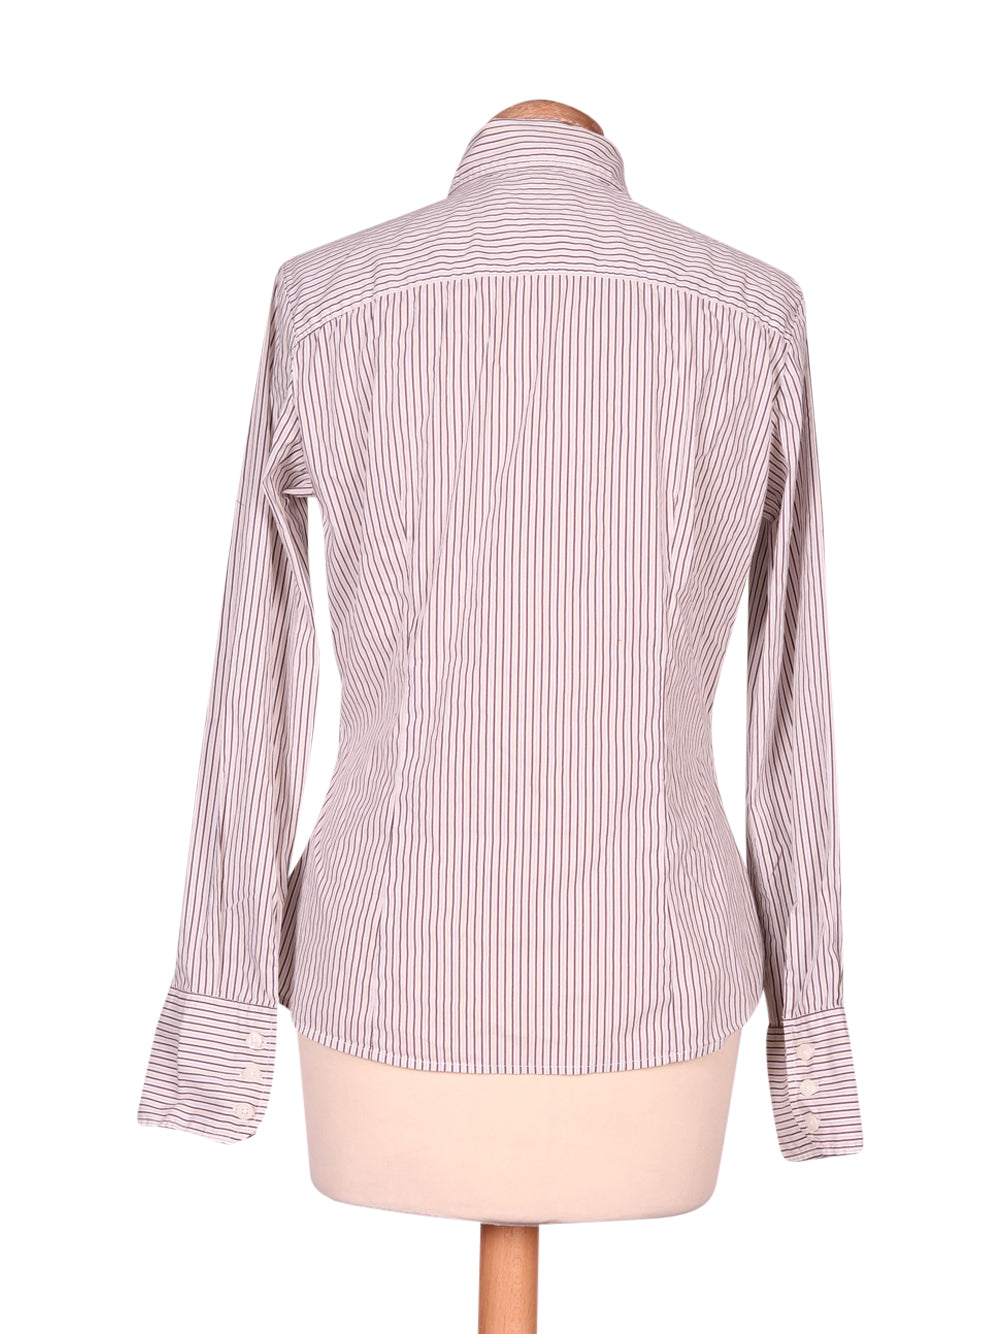 Back photo of Preloved Sisley White Woman's shirt - size 10/M